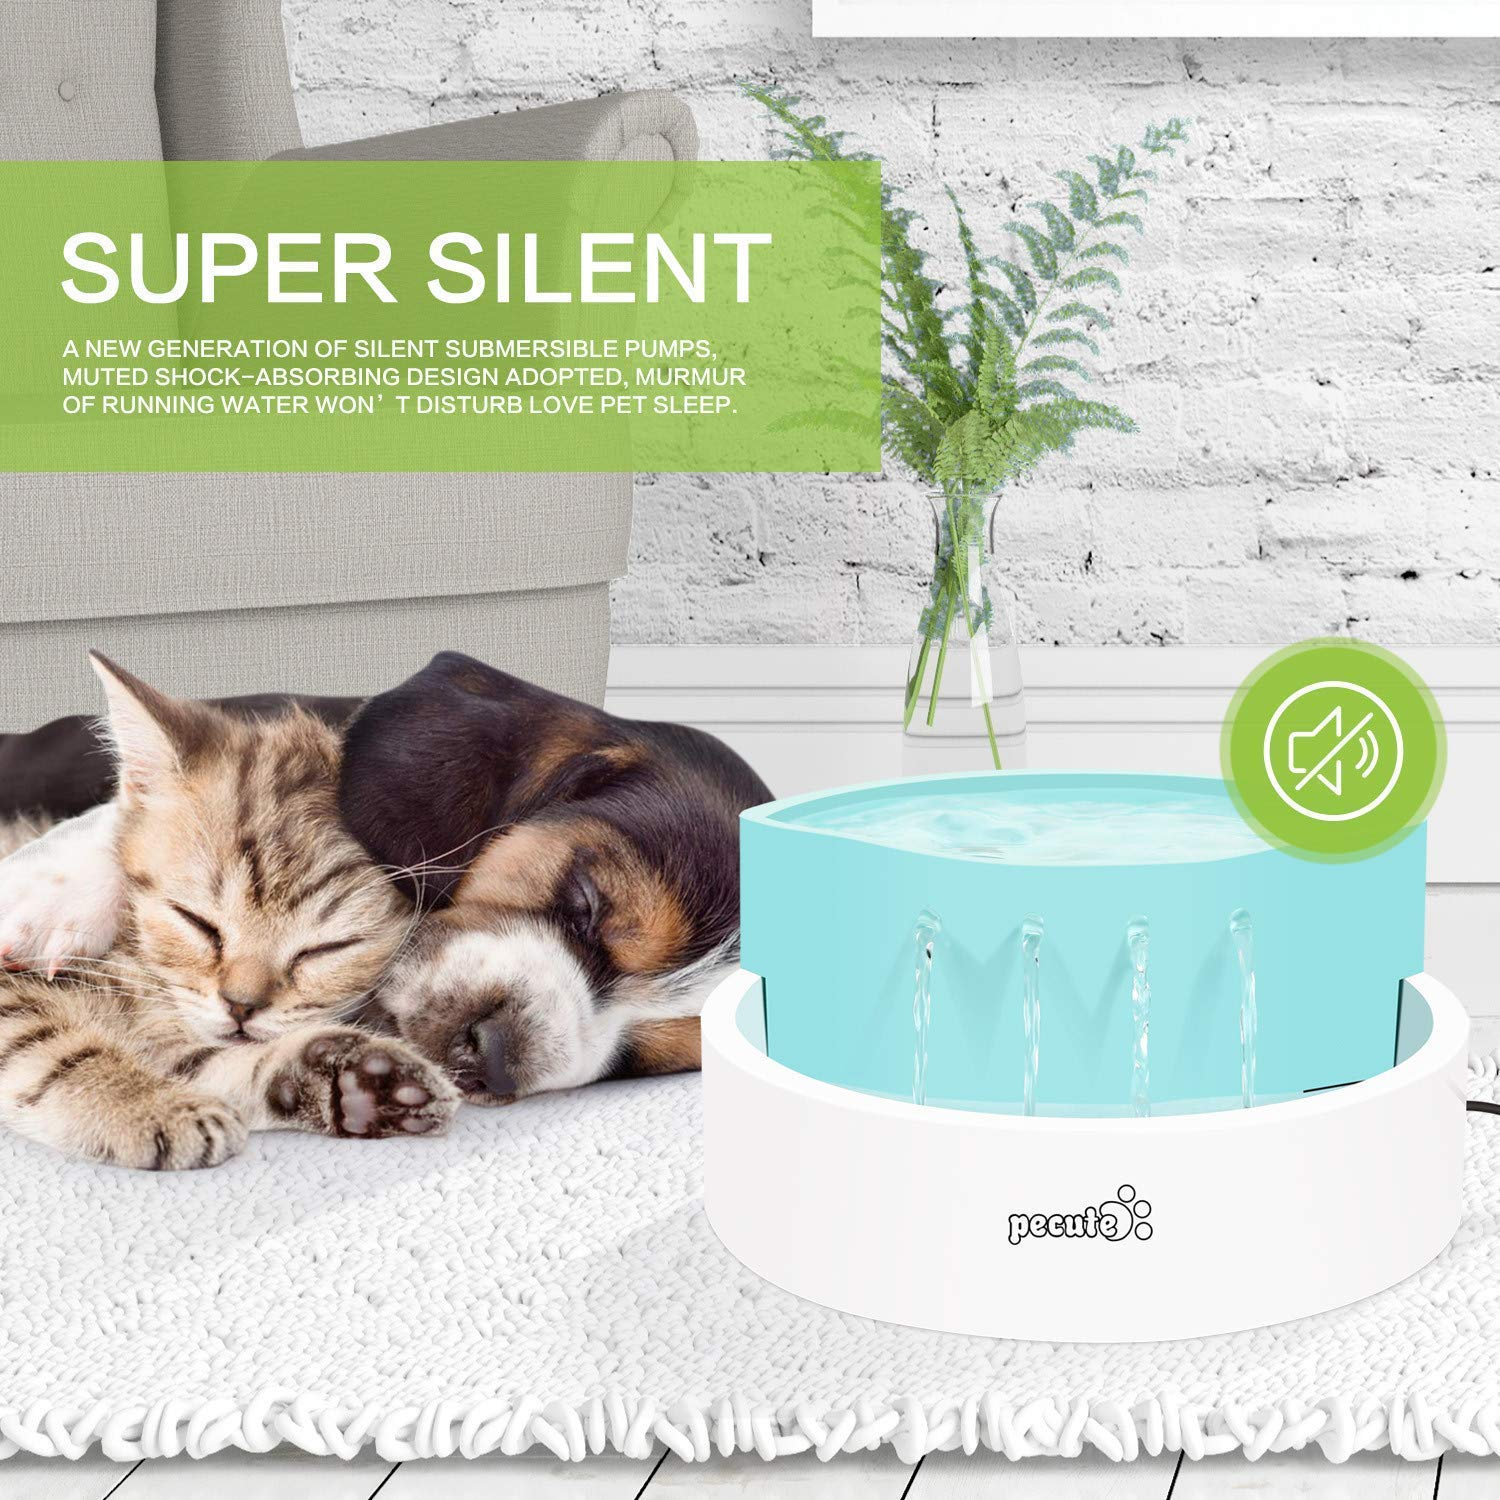 Pecute Pet Fountain Cat Water Fountain 45 dB Ultra-Quiet Automatic Circulation USB Electric Water Feeder 1.6L, Great for Cats, Small Dogs Drinking Indoor Outdoor Use